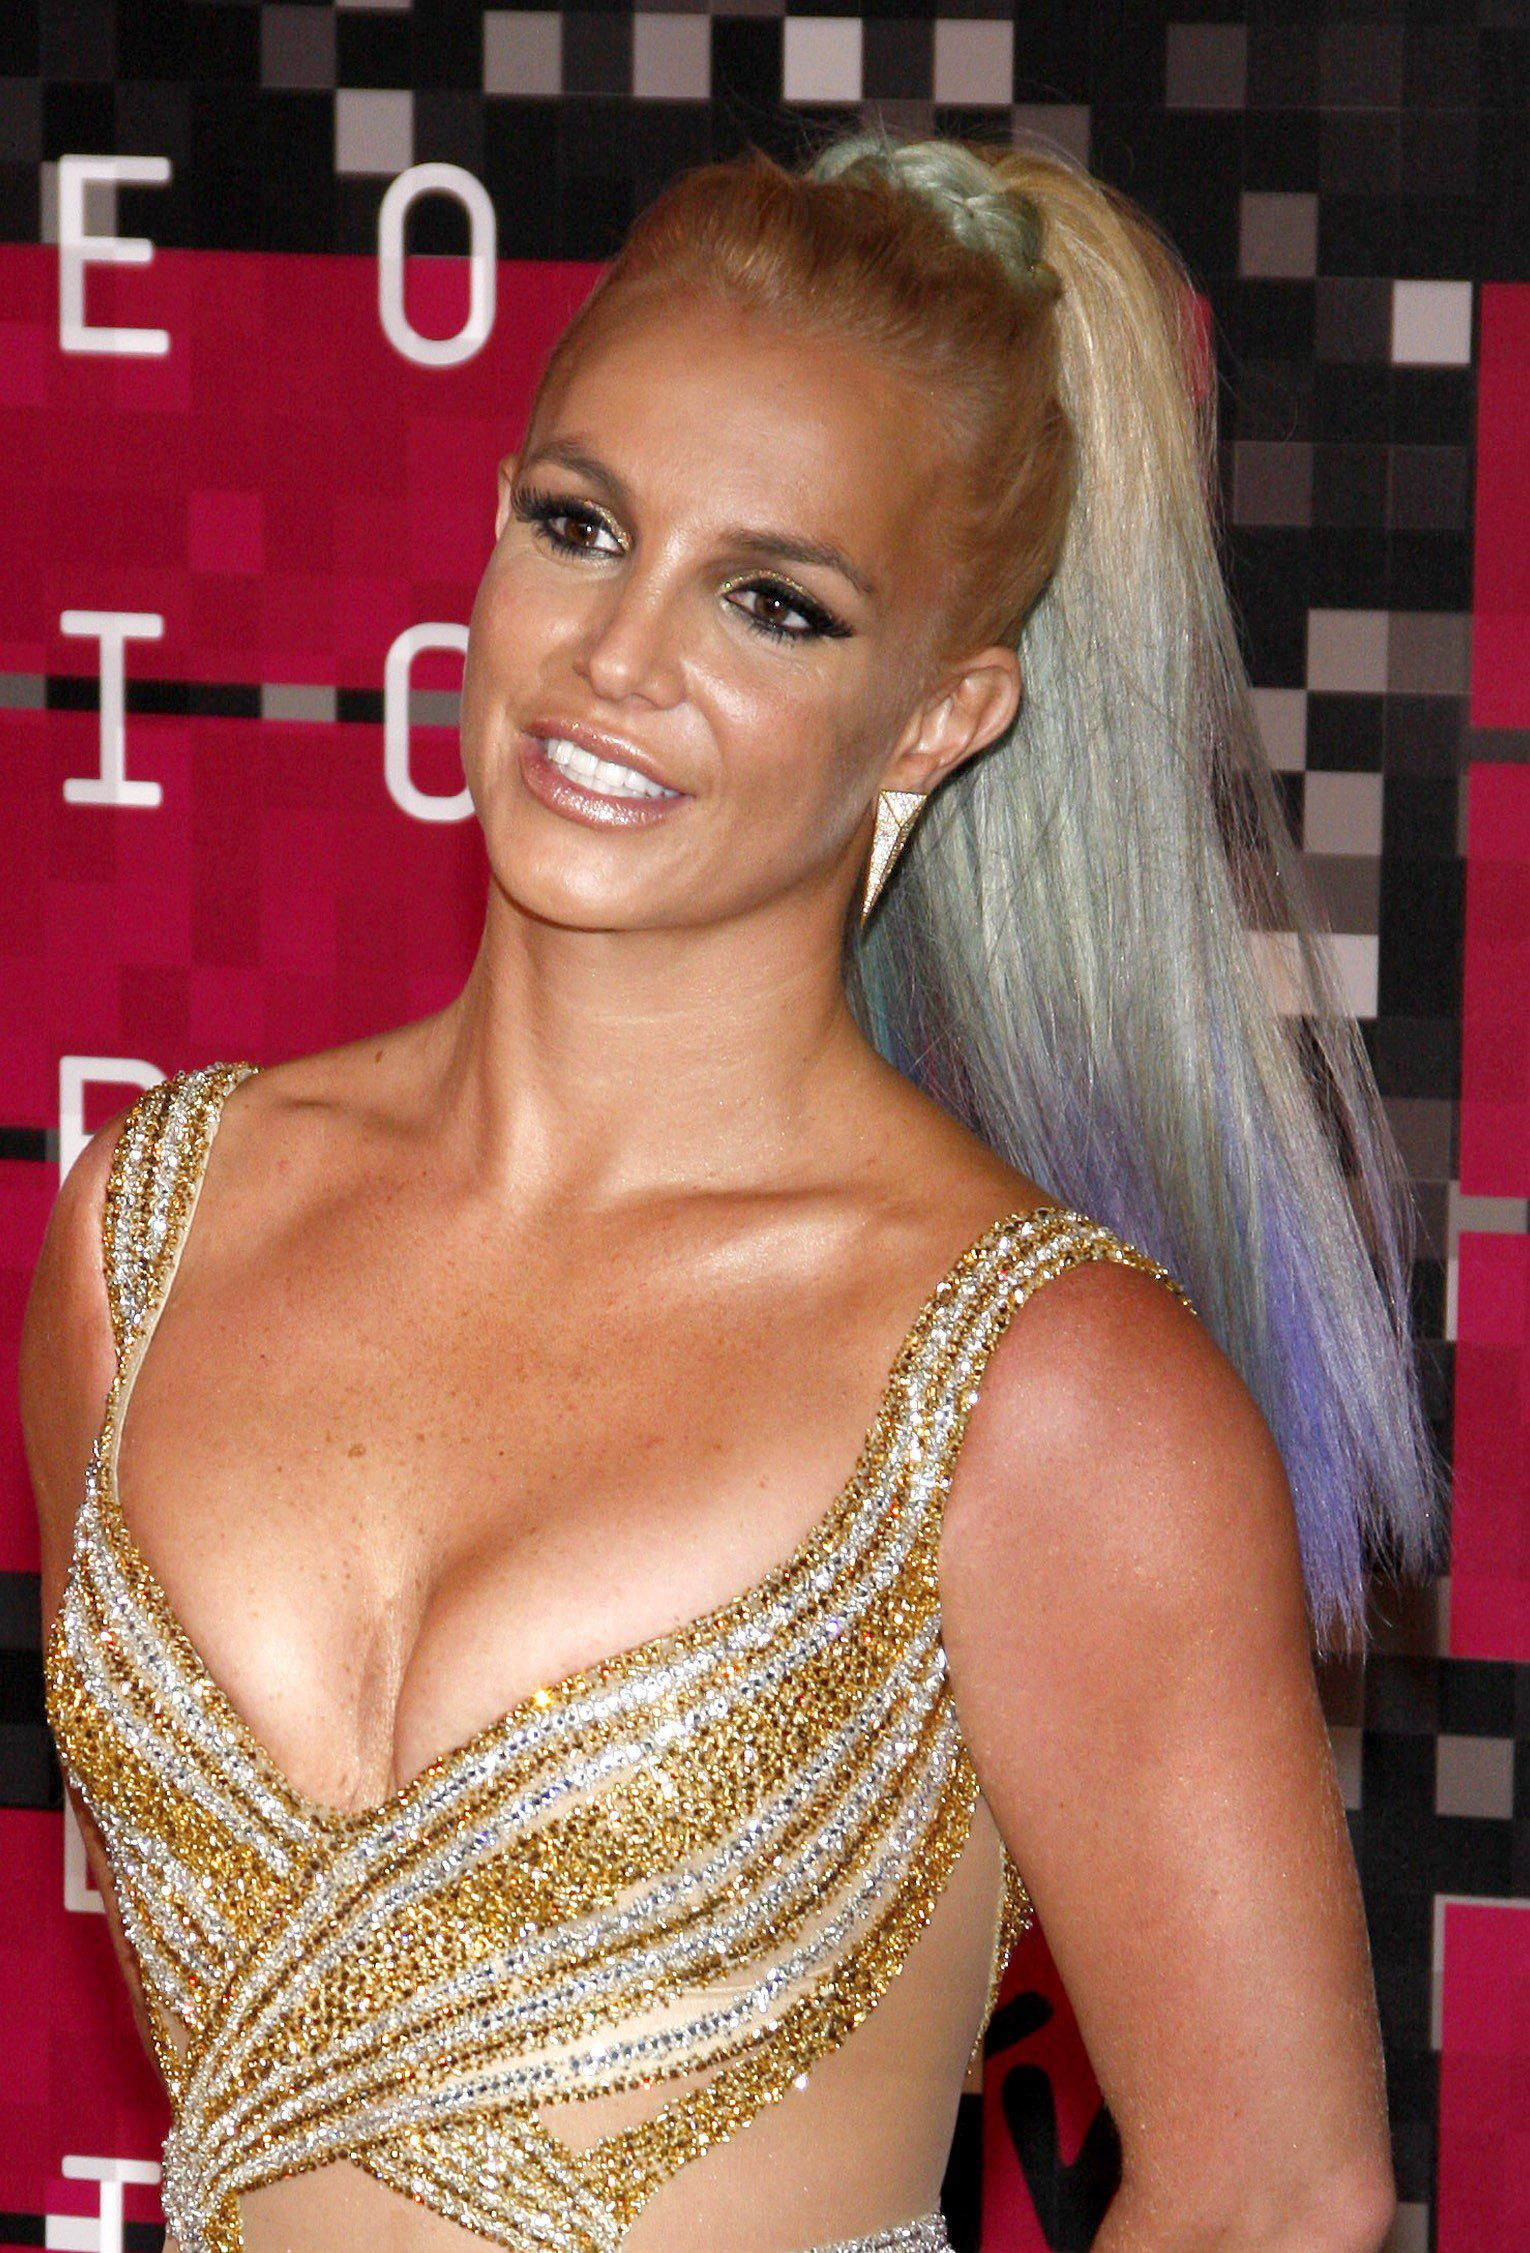 Britney Spears' Purple and Blue Highlights on Blonde Hair